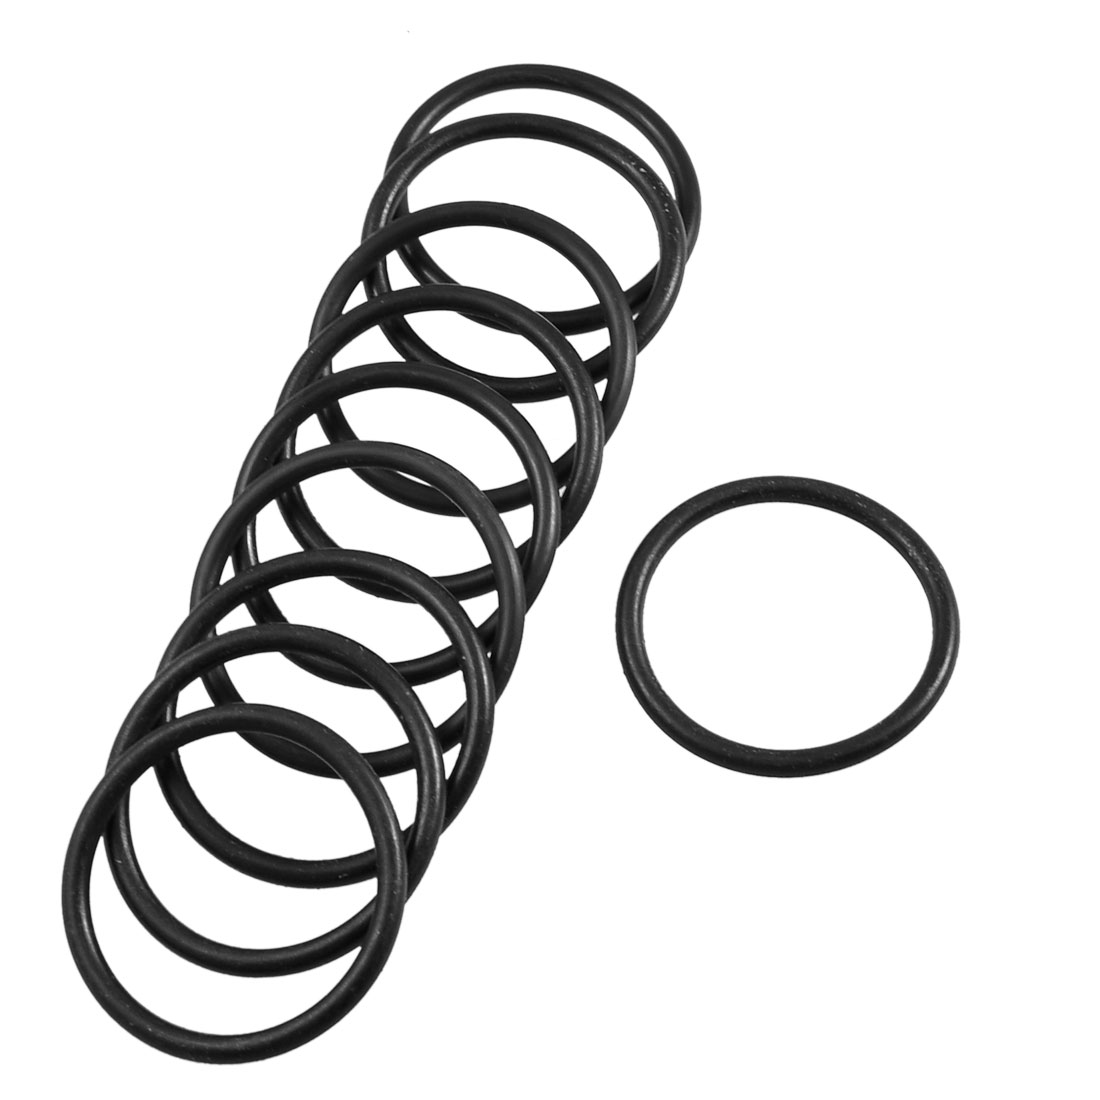 10 Pcs Industrial Rubber O Ring Oil Seal Gaskets 37mm x 30mm x 3.1mm